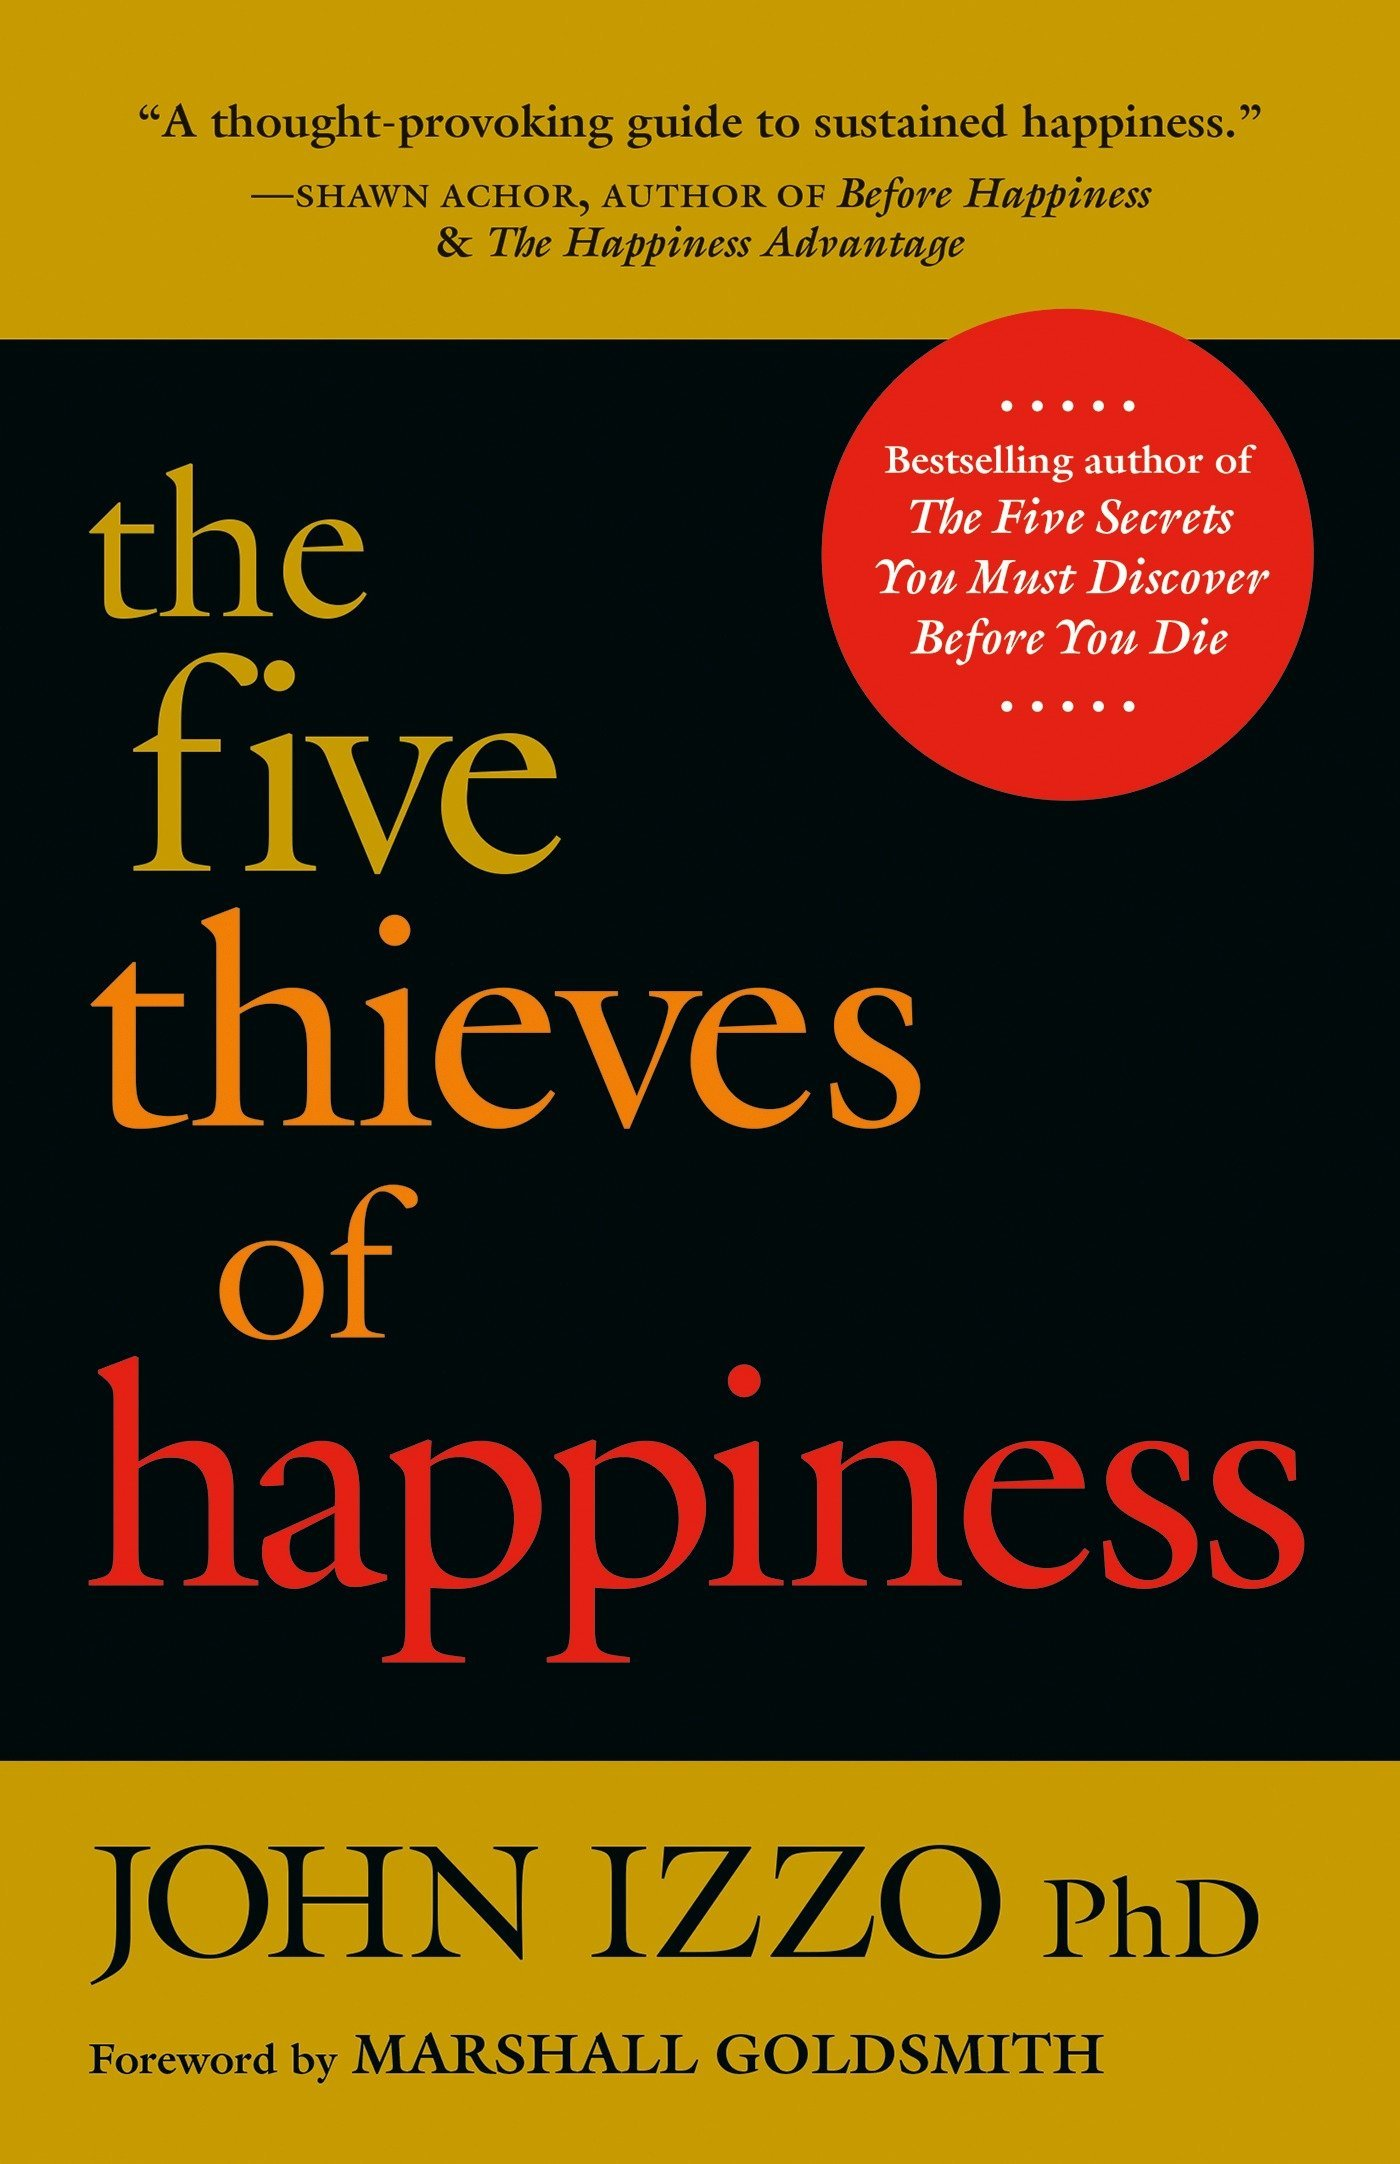 The Five Thieves of Happiness PDF Summary